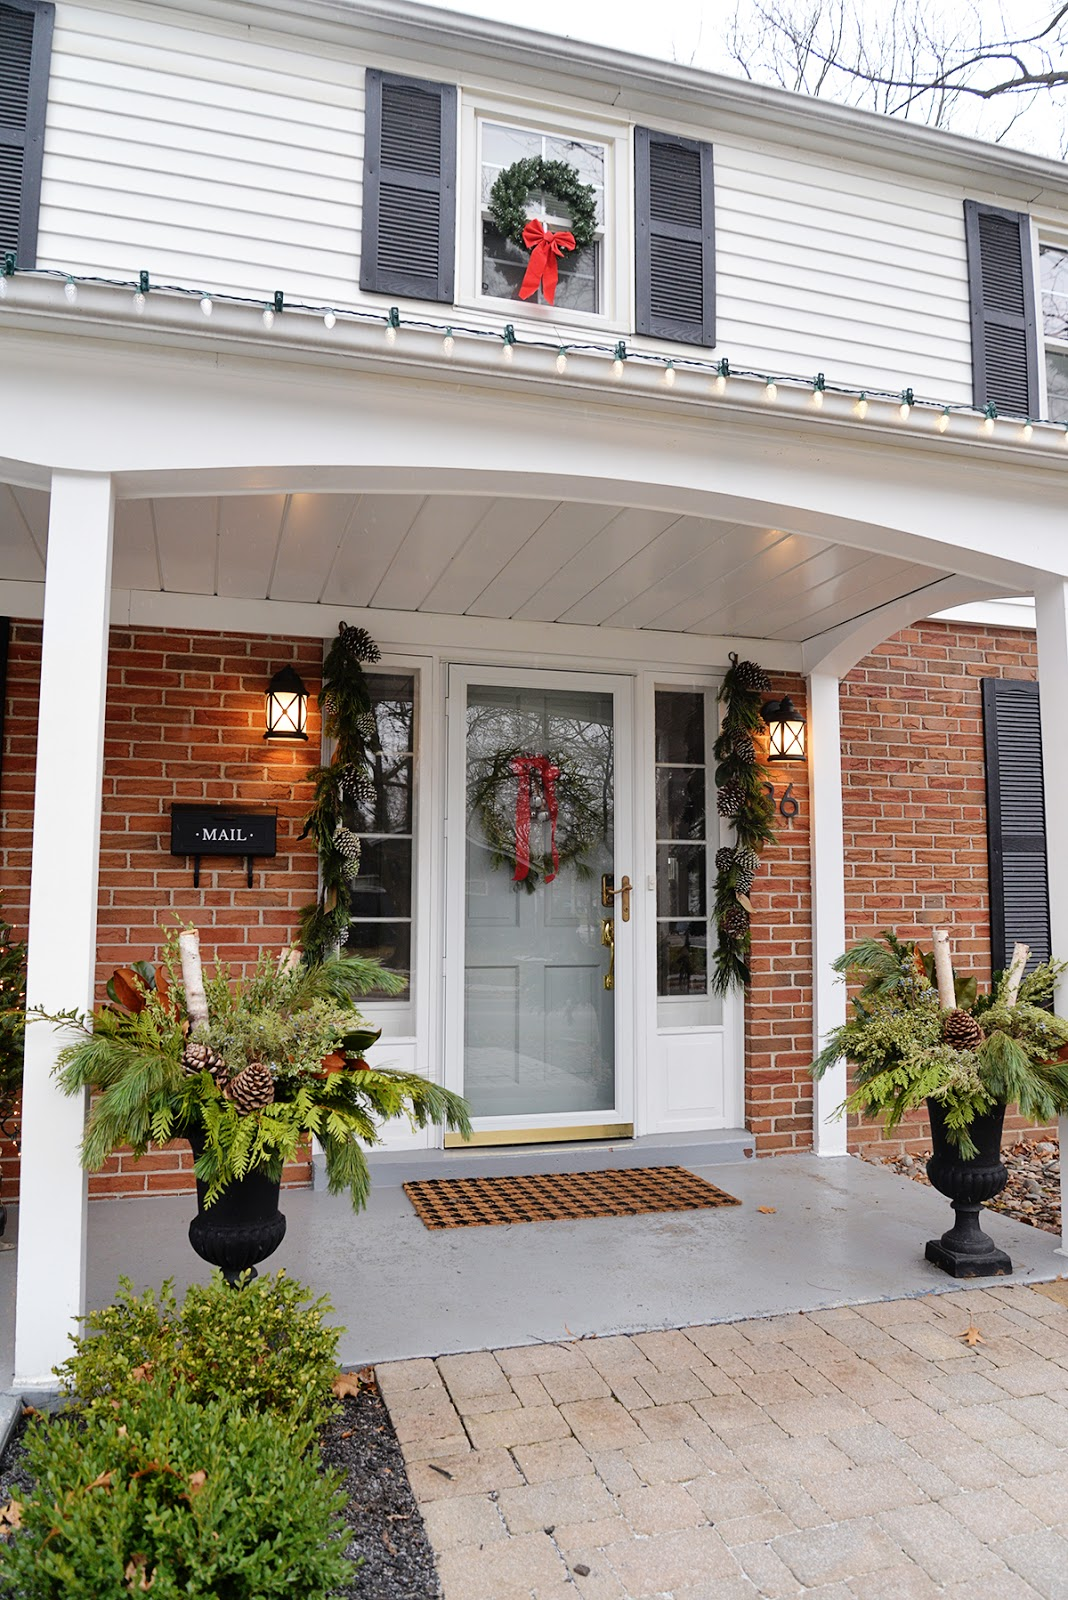 Christmas colonial house with wreaths in windows and DIY outdoor planter